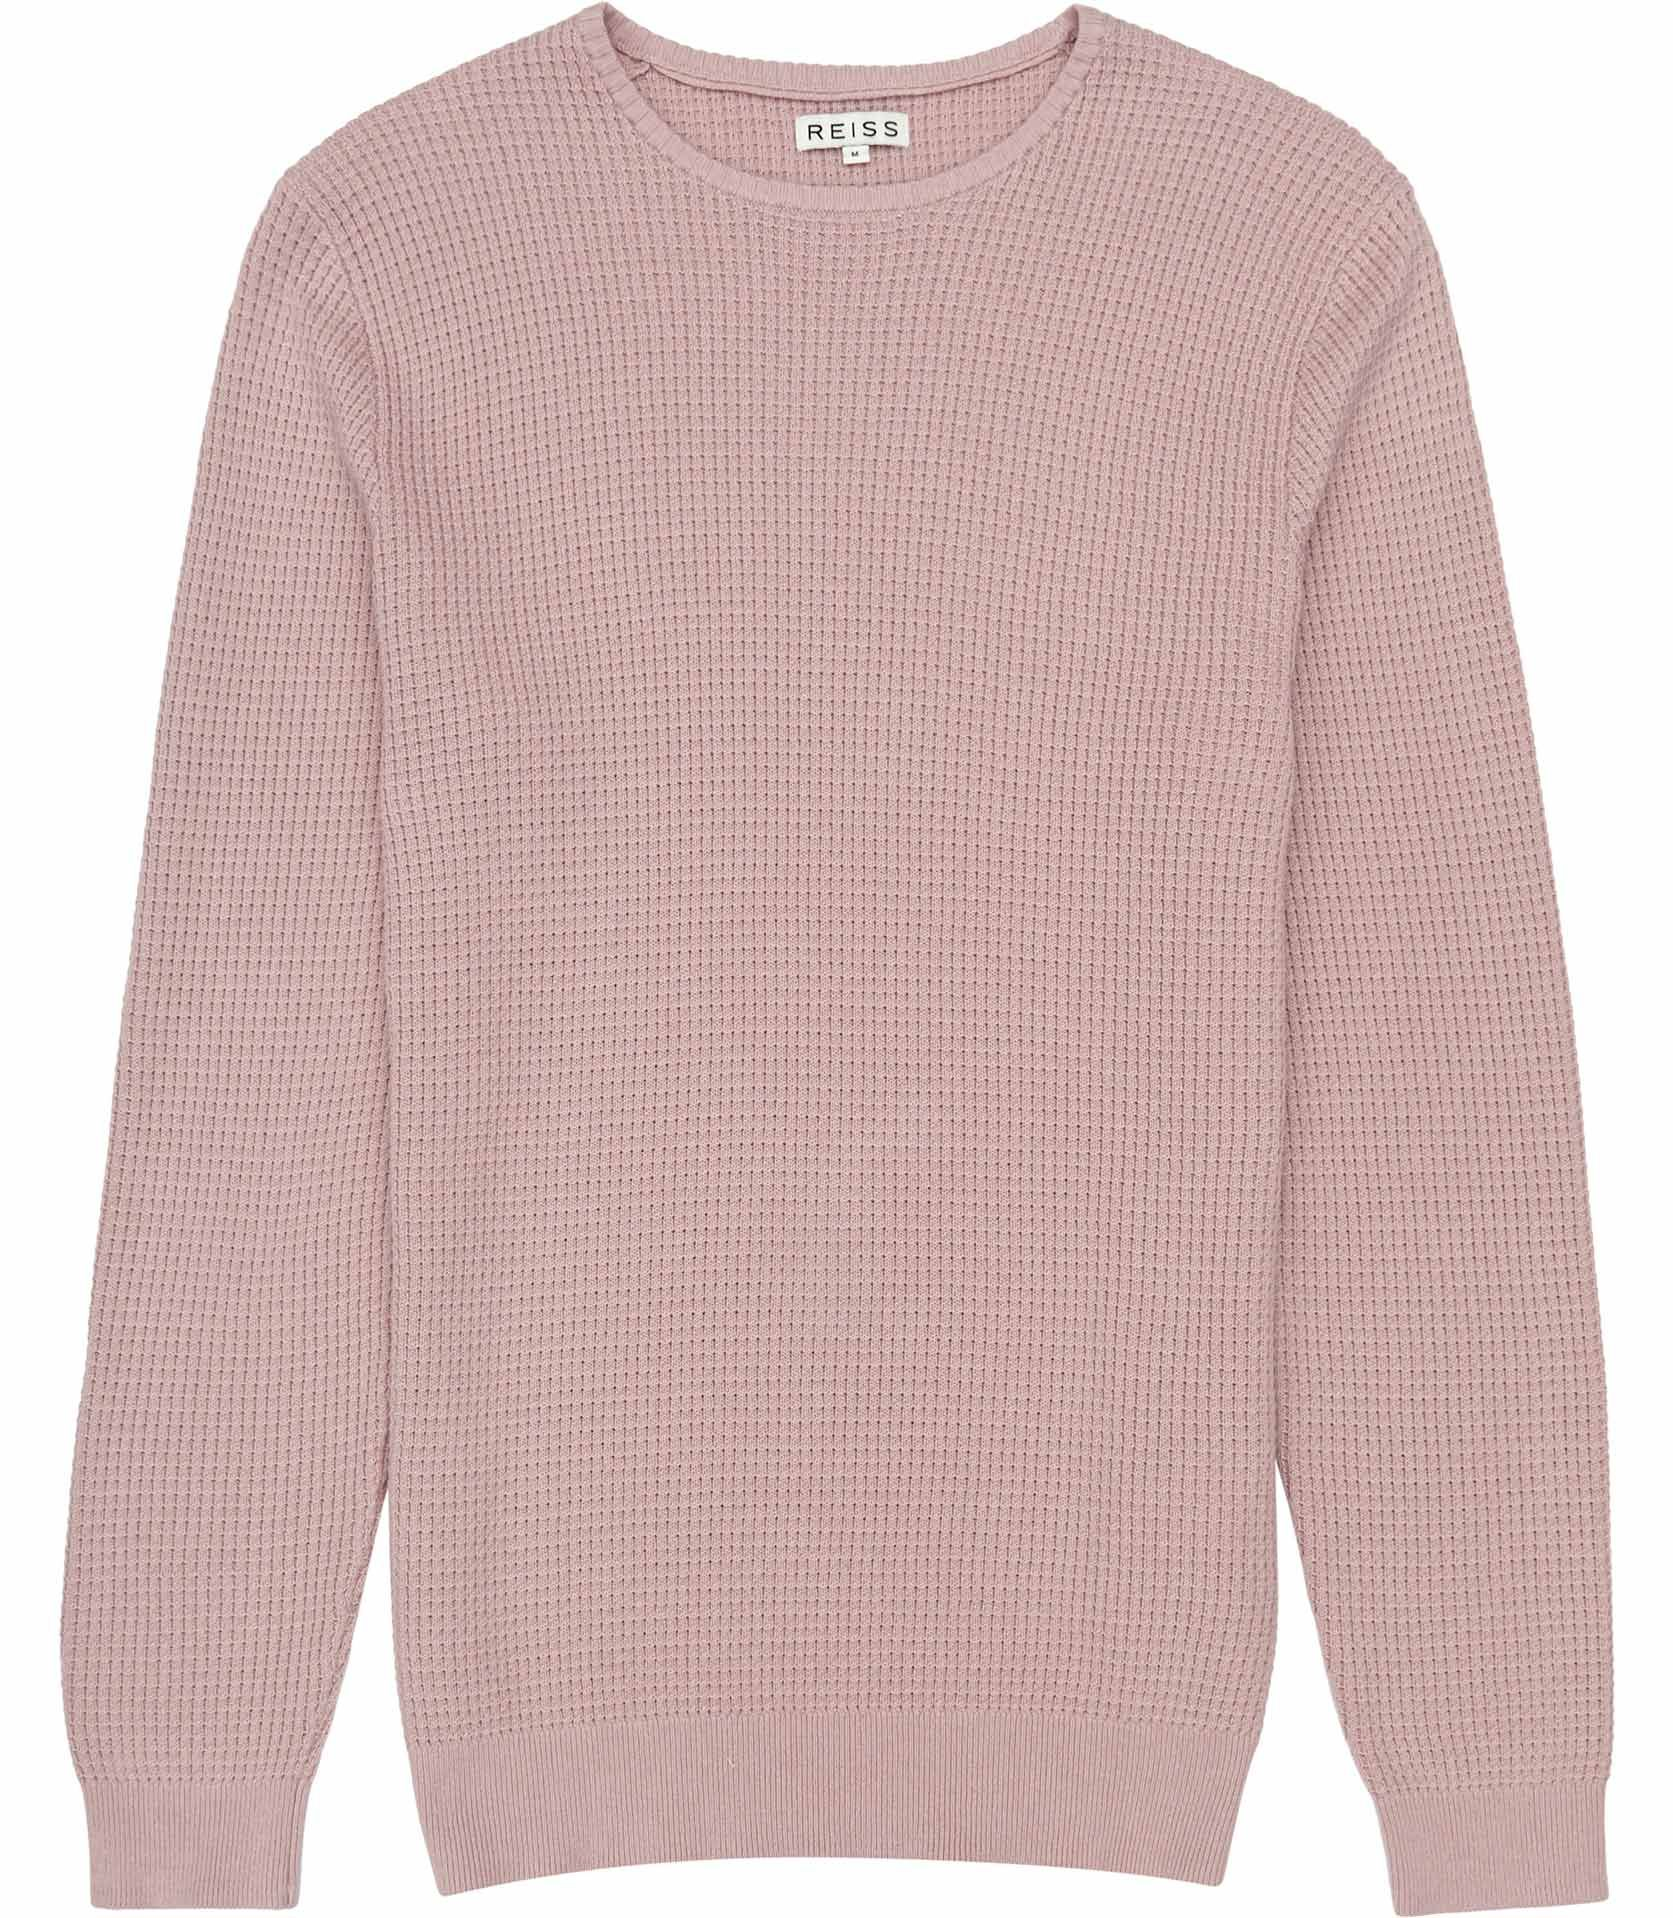 Mens Soft Pink Waffle Knit Jumper - Reiss Edward